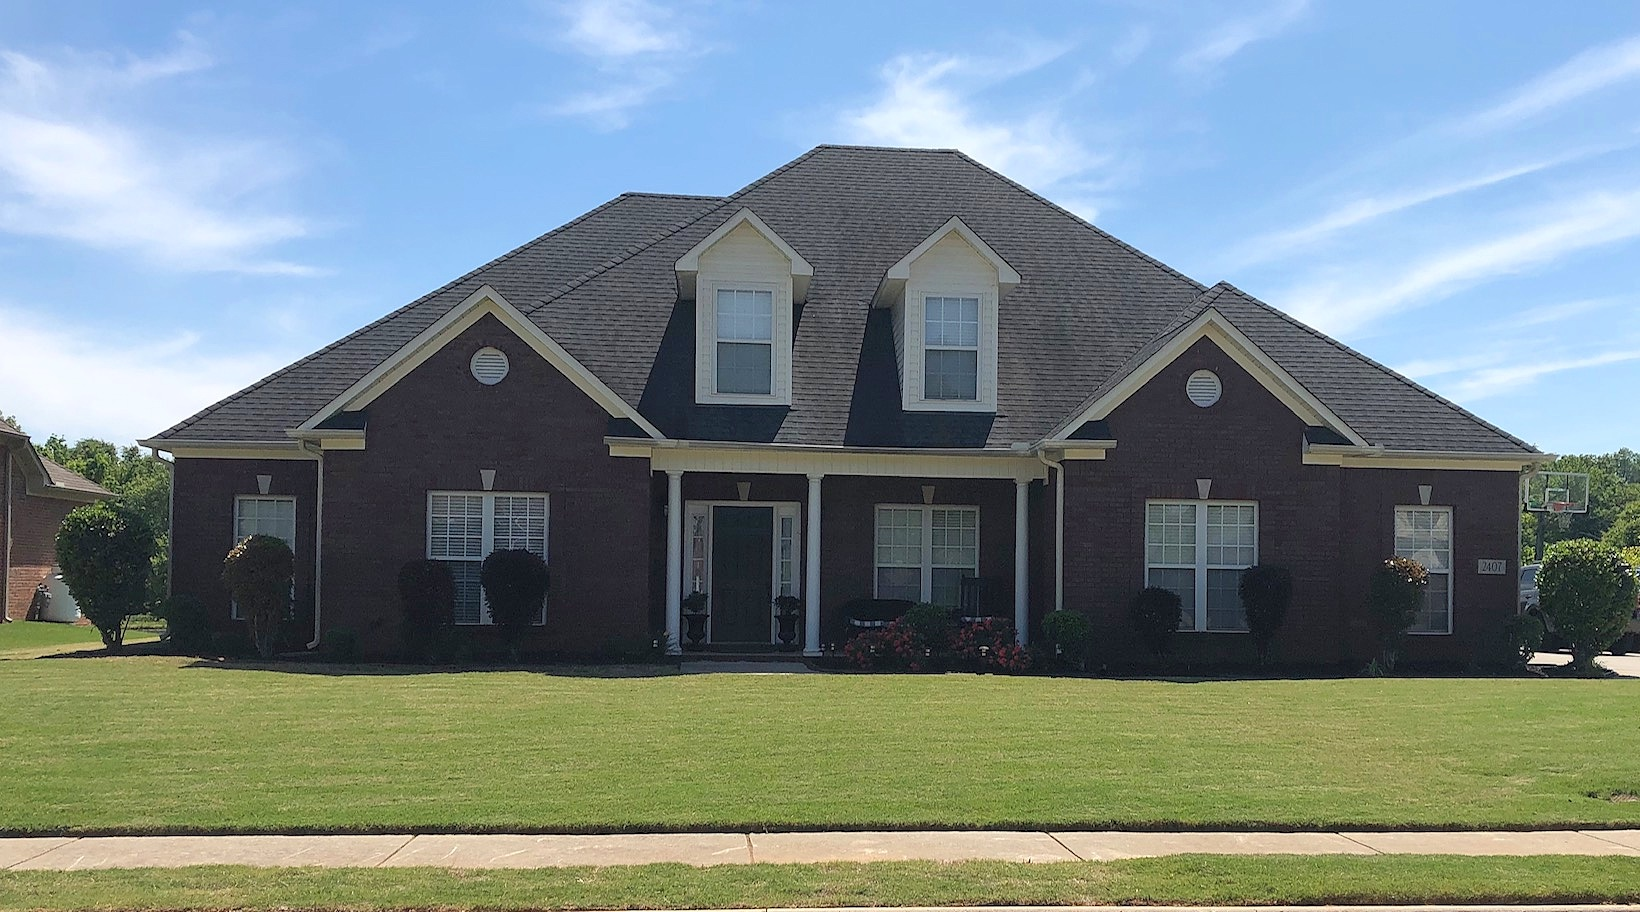 4 Bedrooms / 3.5 Bathrooms - Est. $2,434.00 / Month* for rent in Huntsville, AL